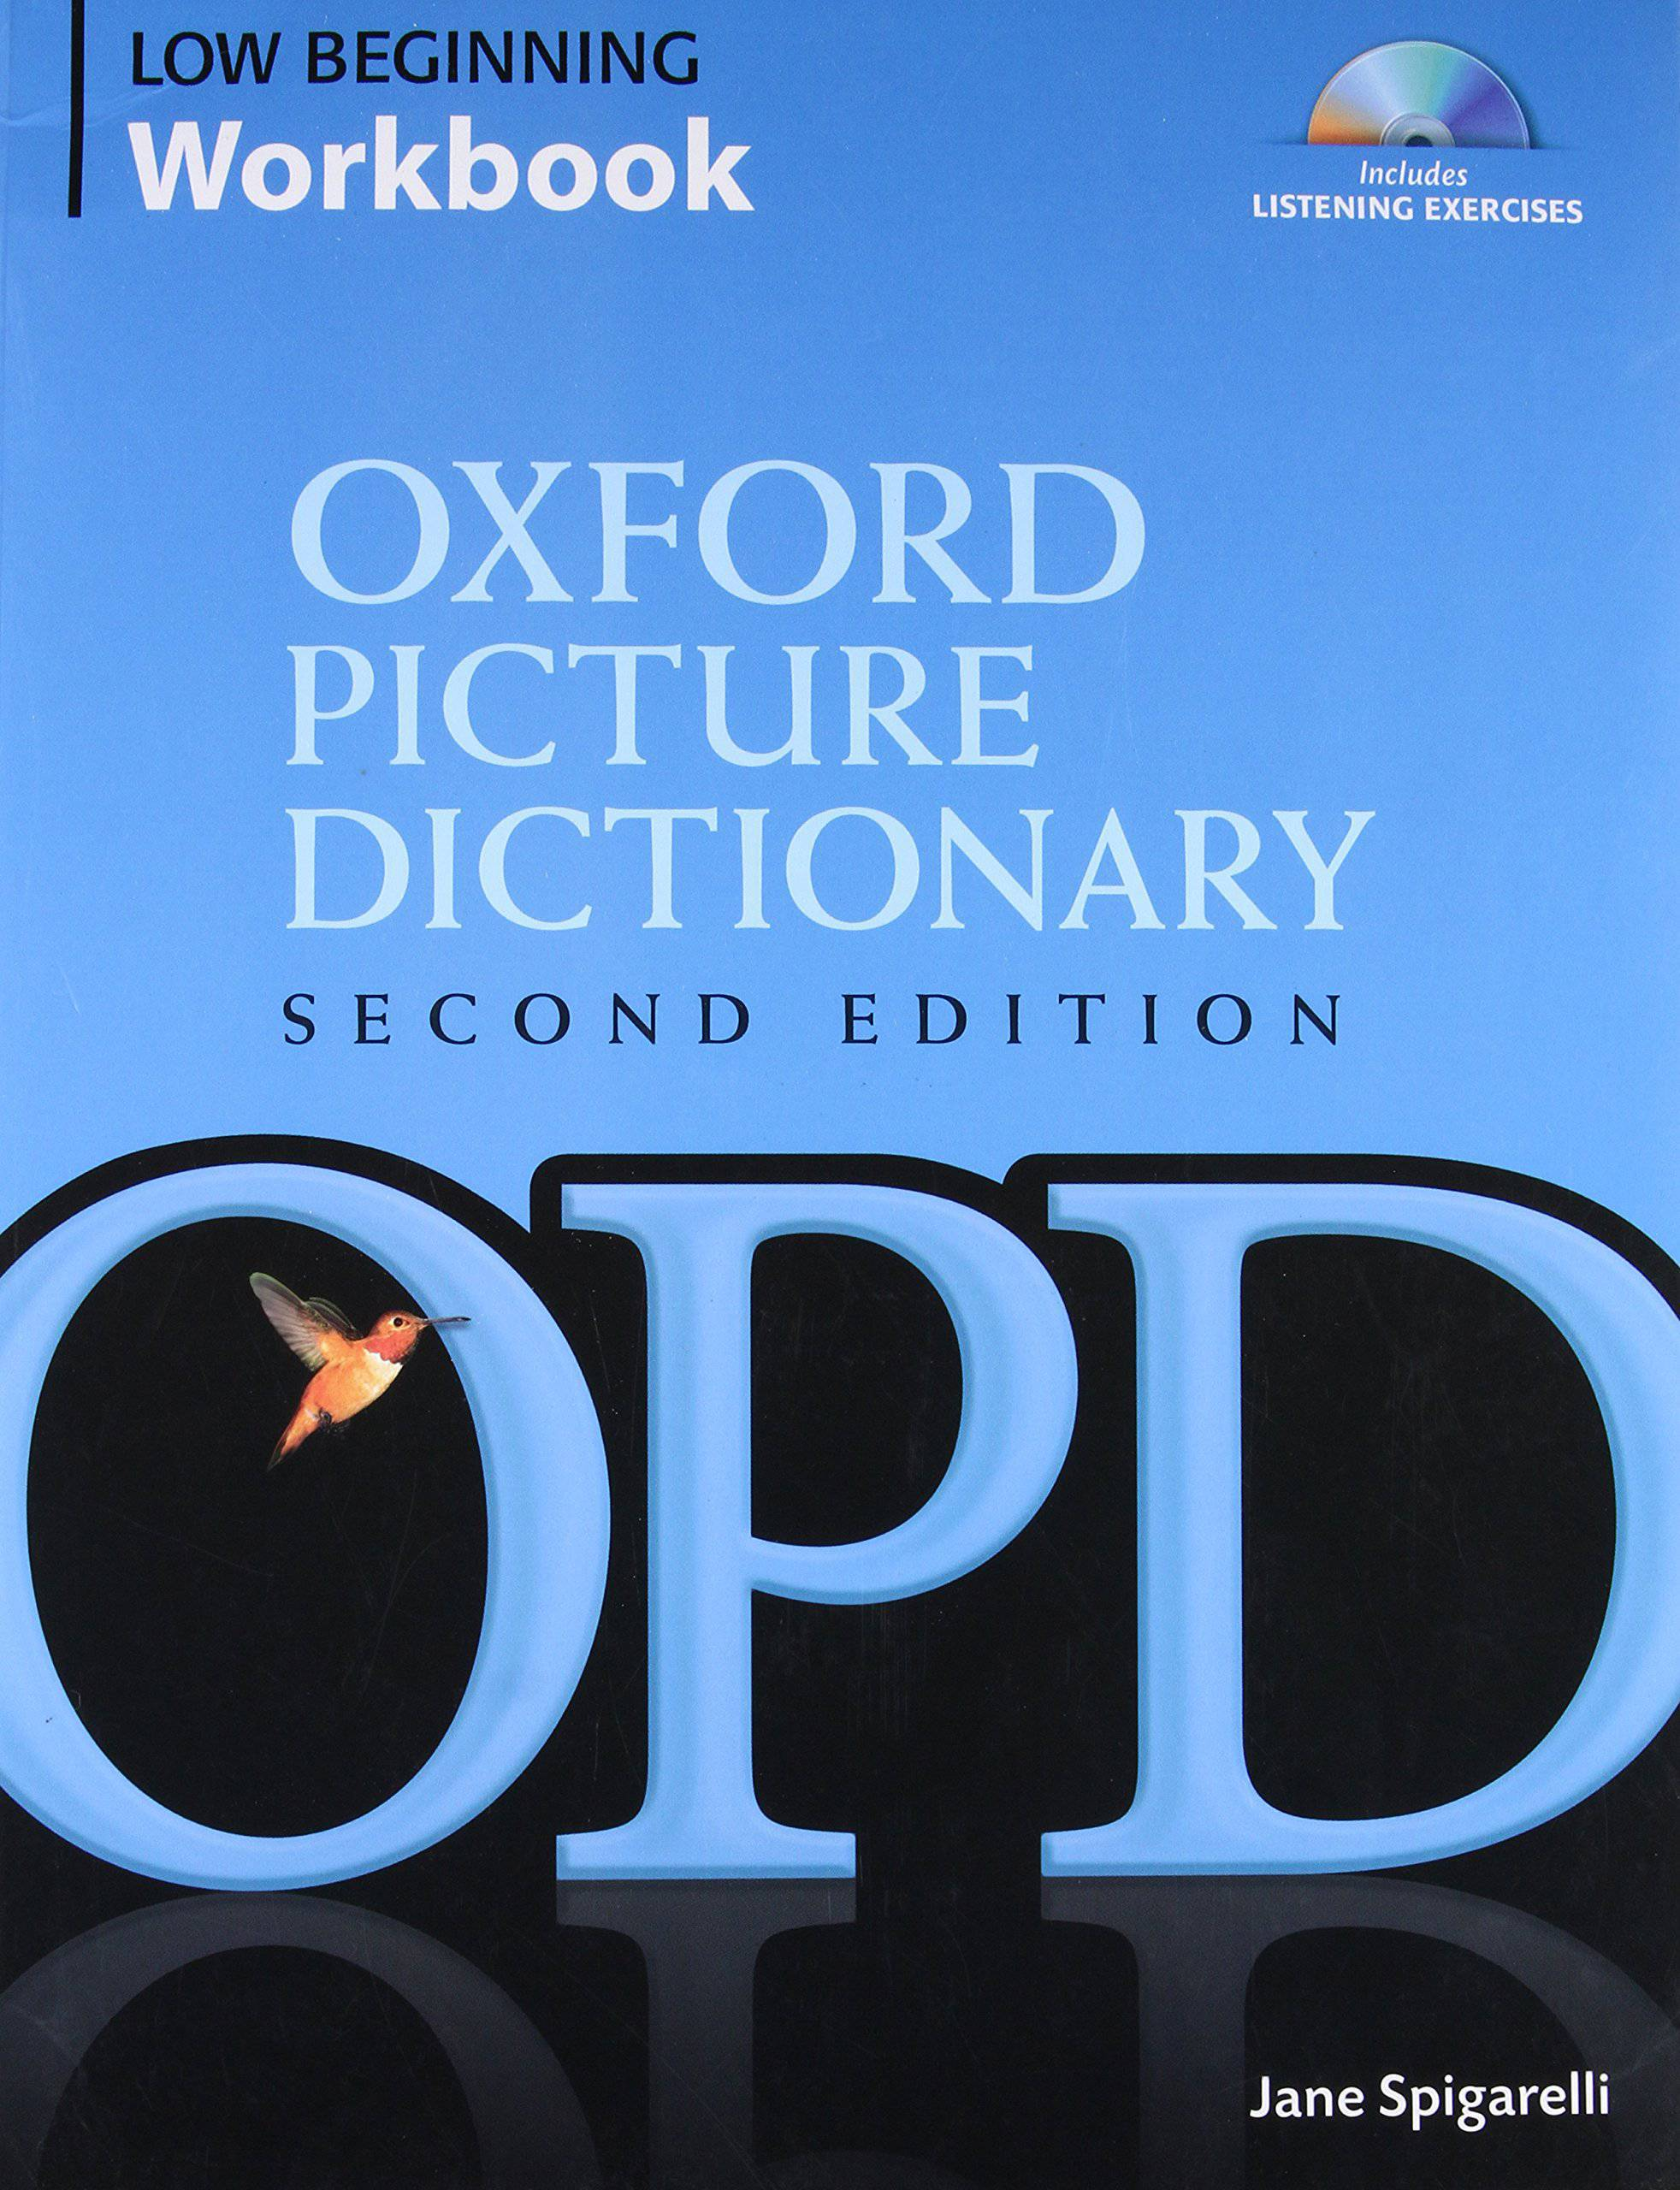 OXF PICTURE DICTIONARY 2ED LO